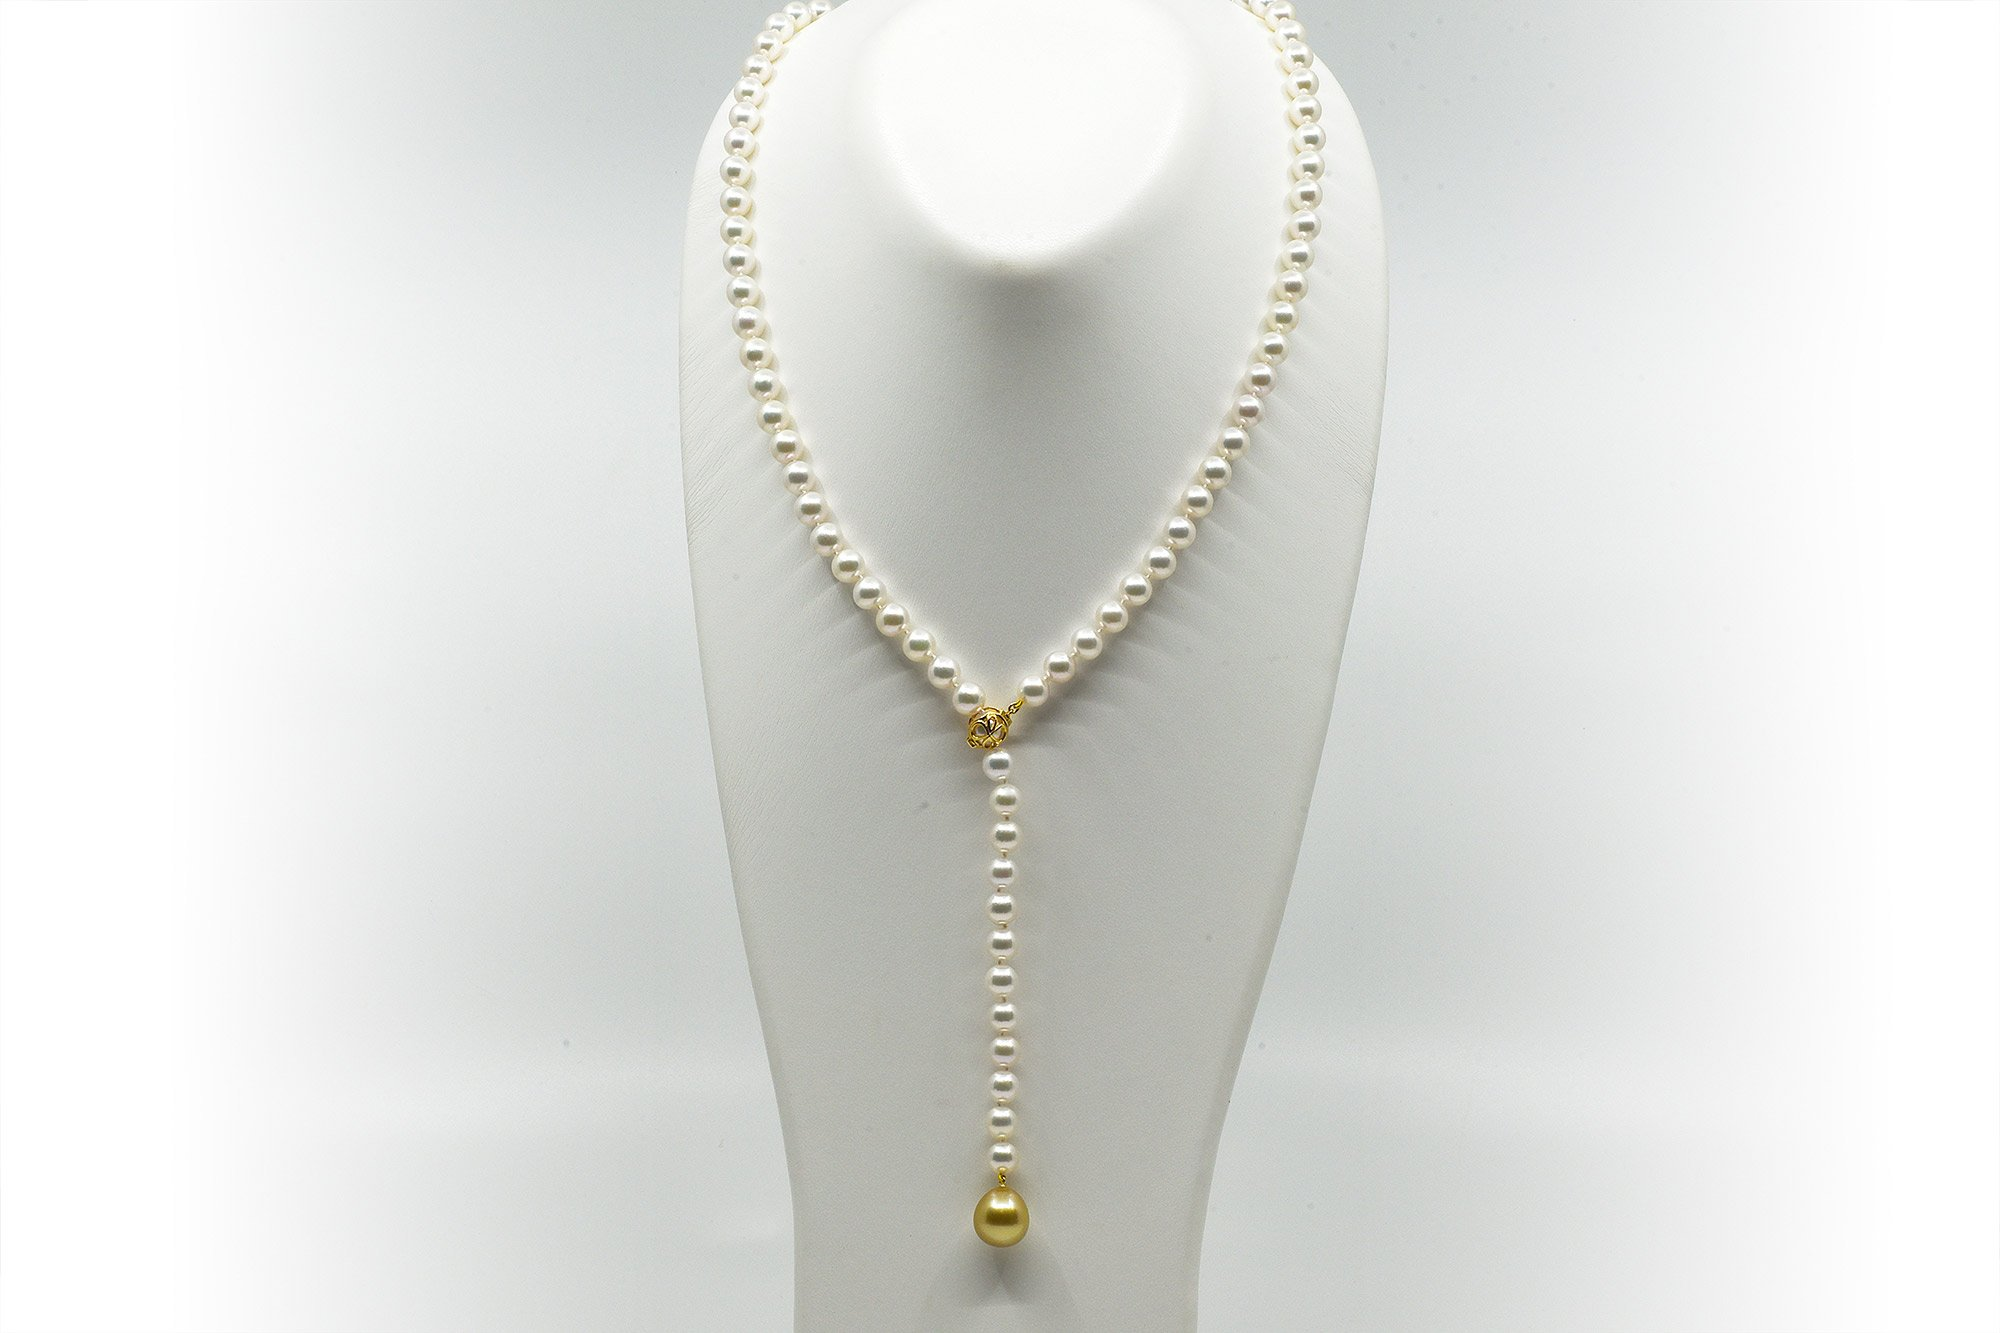 Japanese Akoya pearl lariat with a Golden South Sea drop